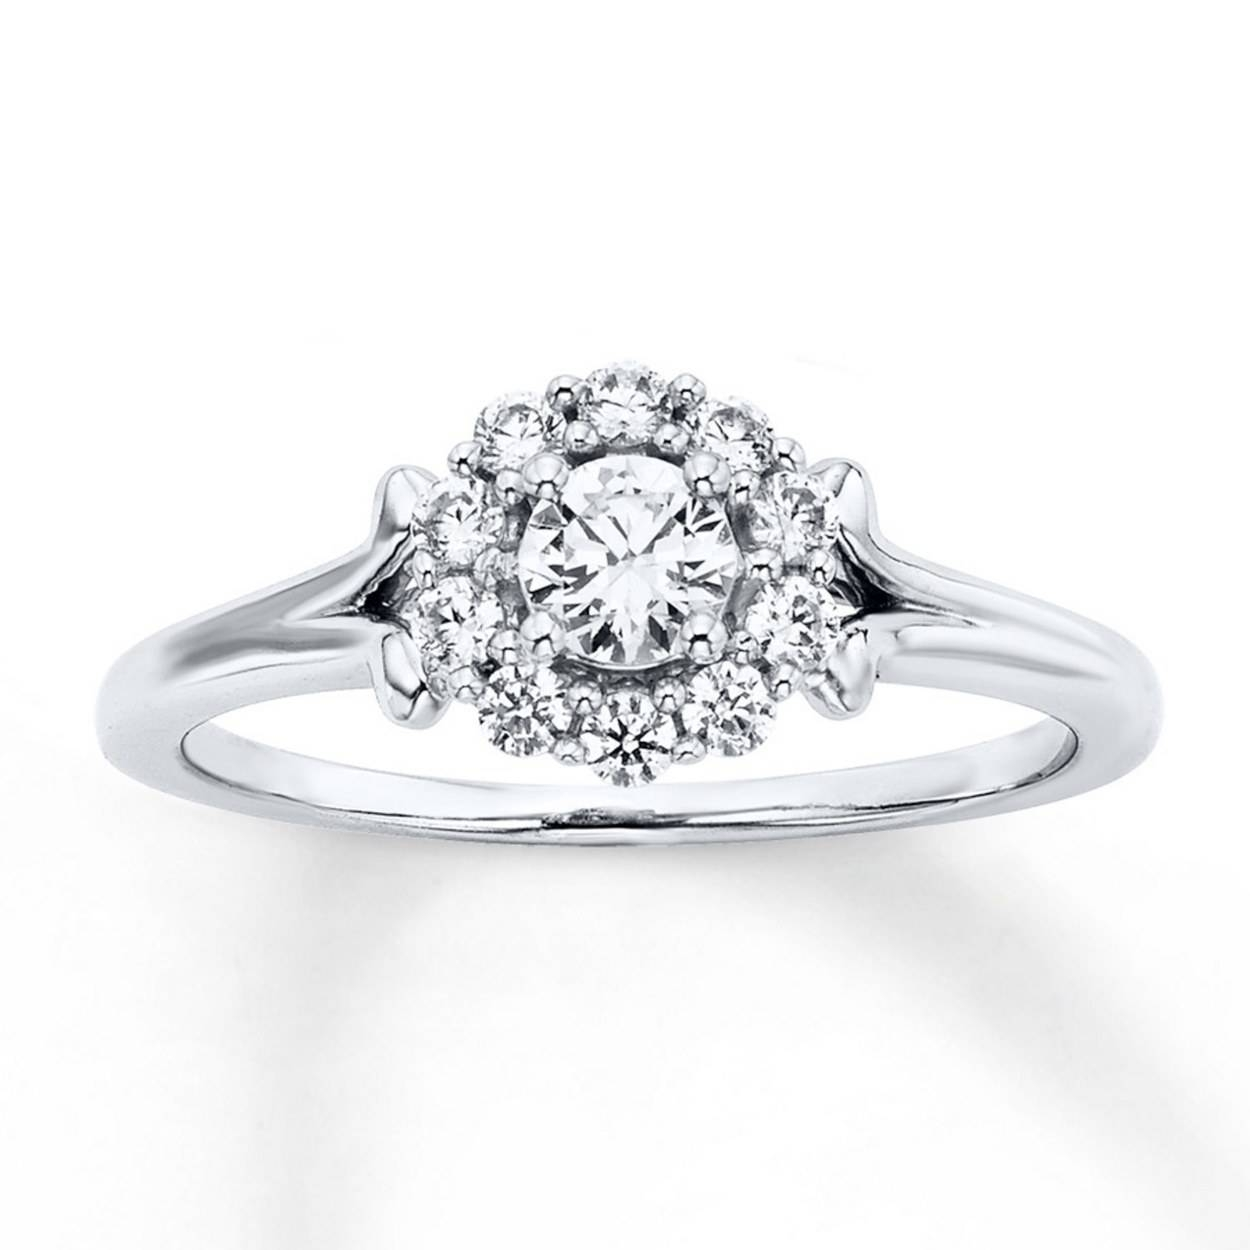 Affordable Engagement Rings Under $1,000 | Glamour With Trinity Diamond Engagement Rings (View 13 of 15)